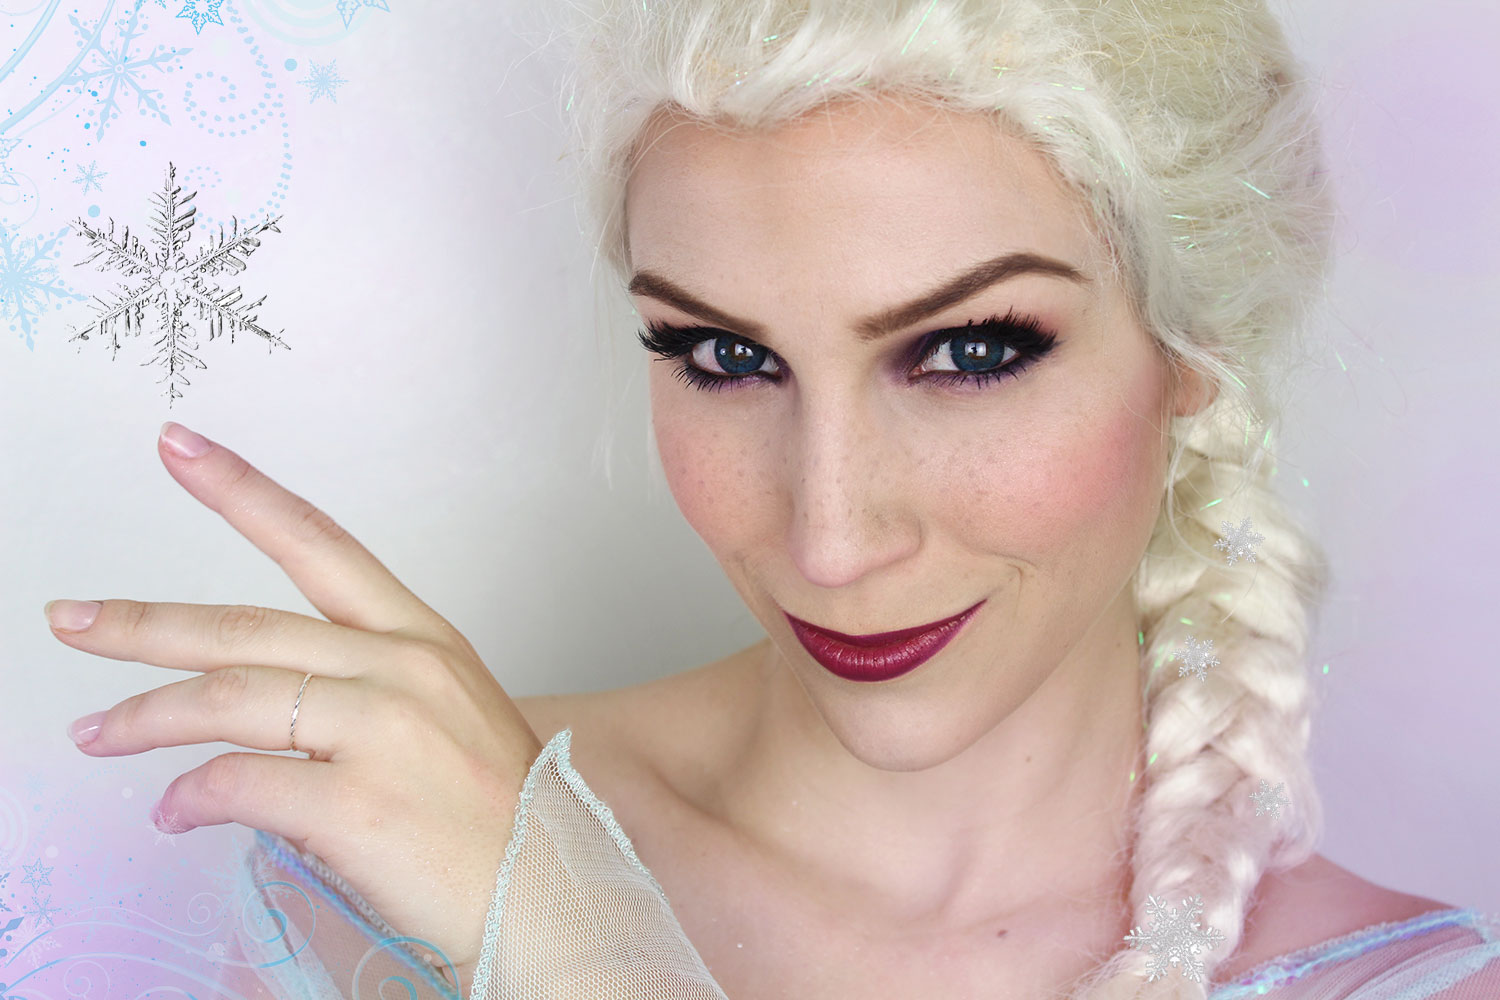 Maquillage dHalloween  Elsa / La Reine des Neiges